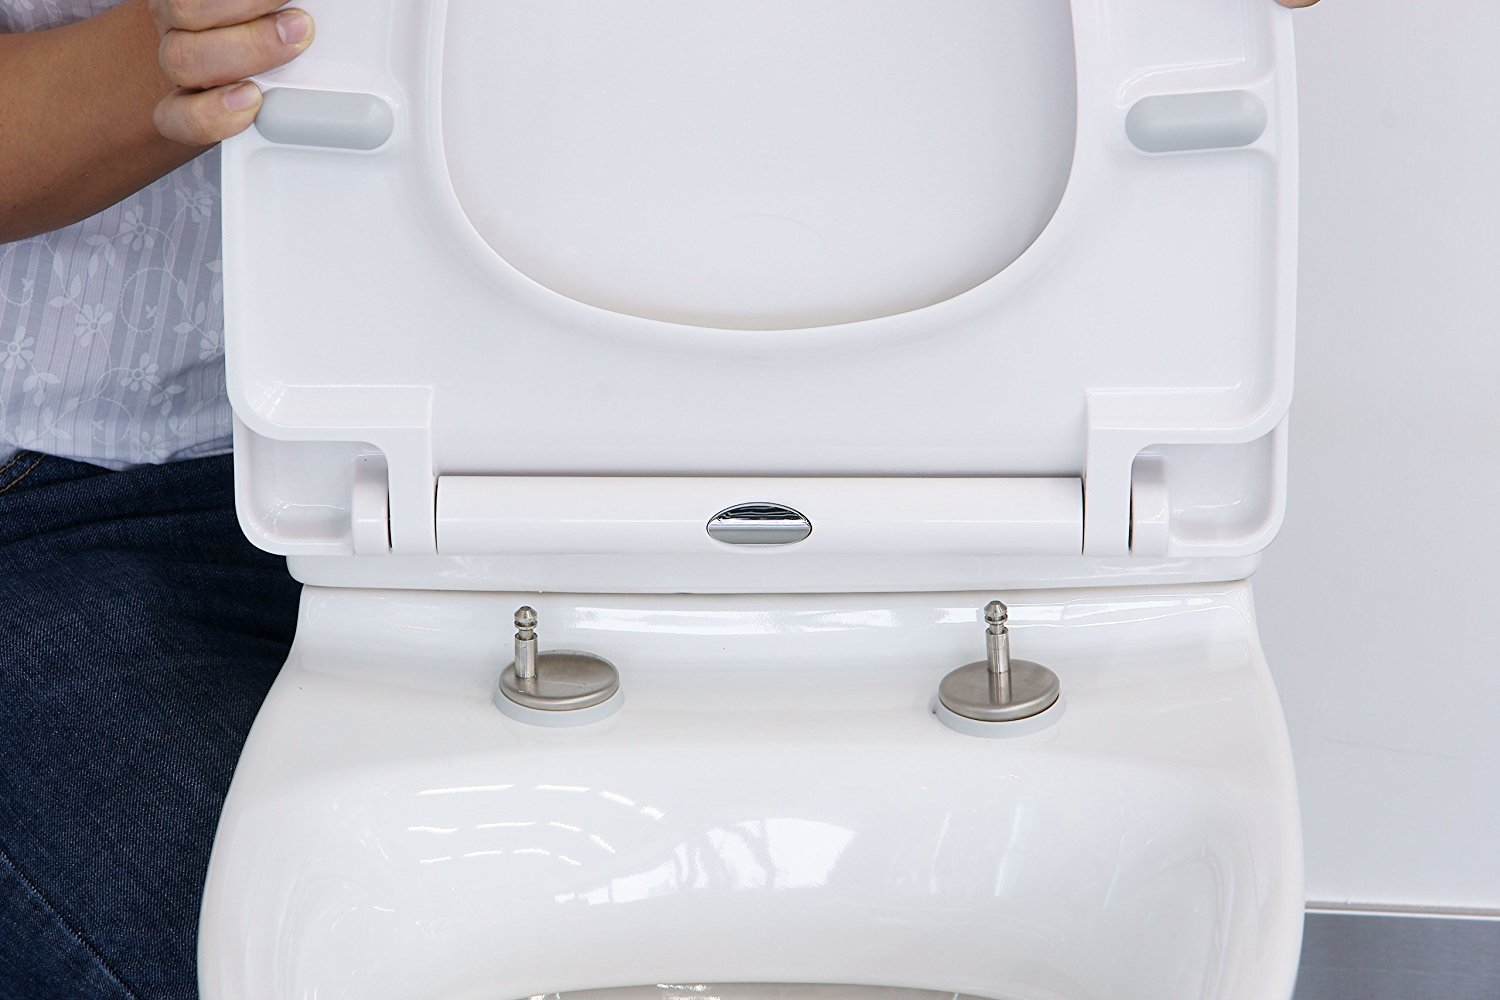 Euroshowers Square Shaped Soft Close Toilet Seat Square Top /& Bottom Fix No Slip Fittings by V20